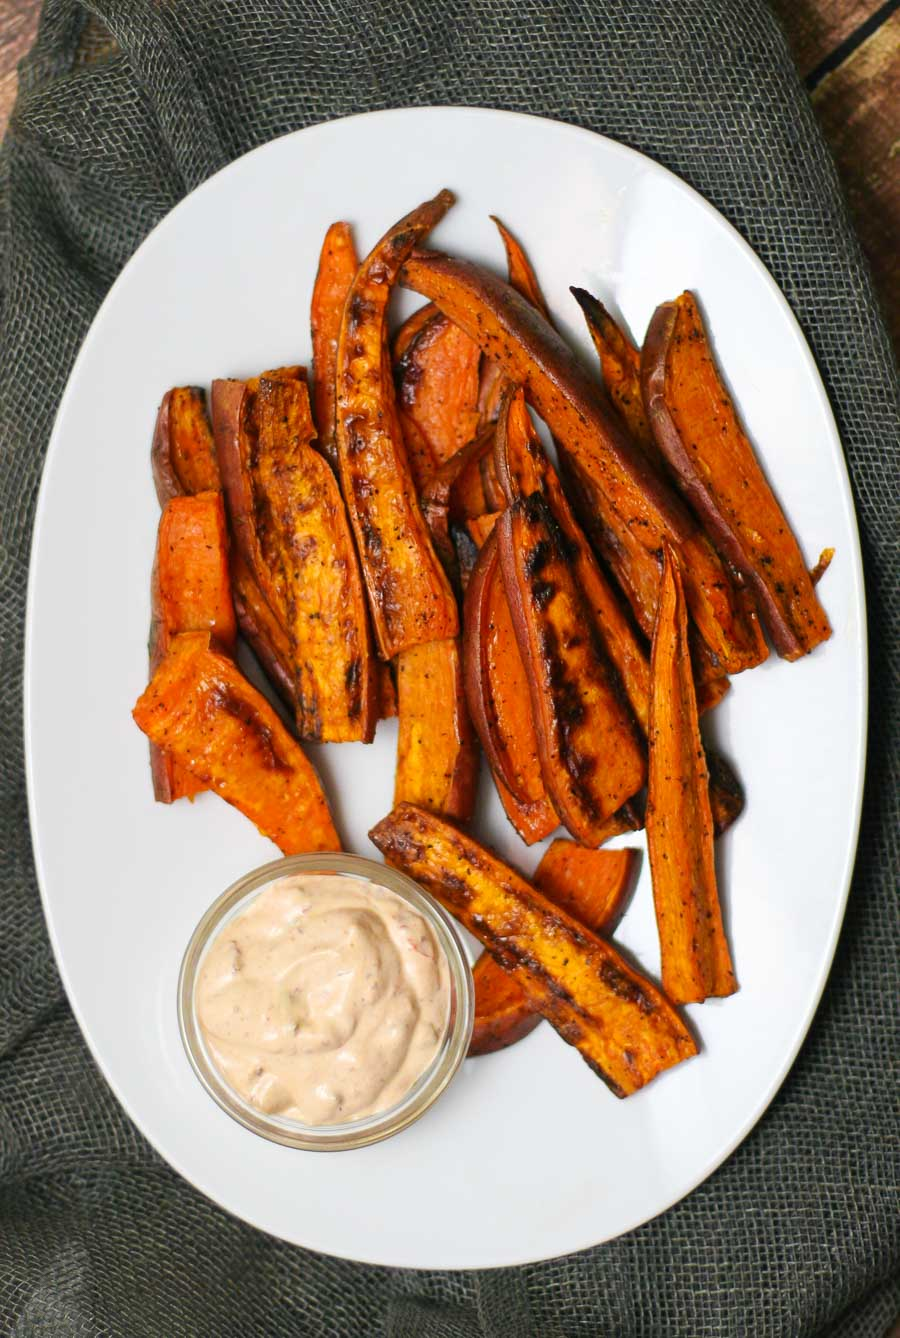 Baked Sweet Potato Wedges With Chipotle Aioli